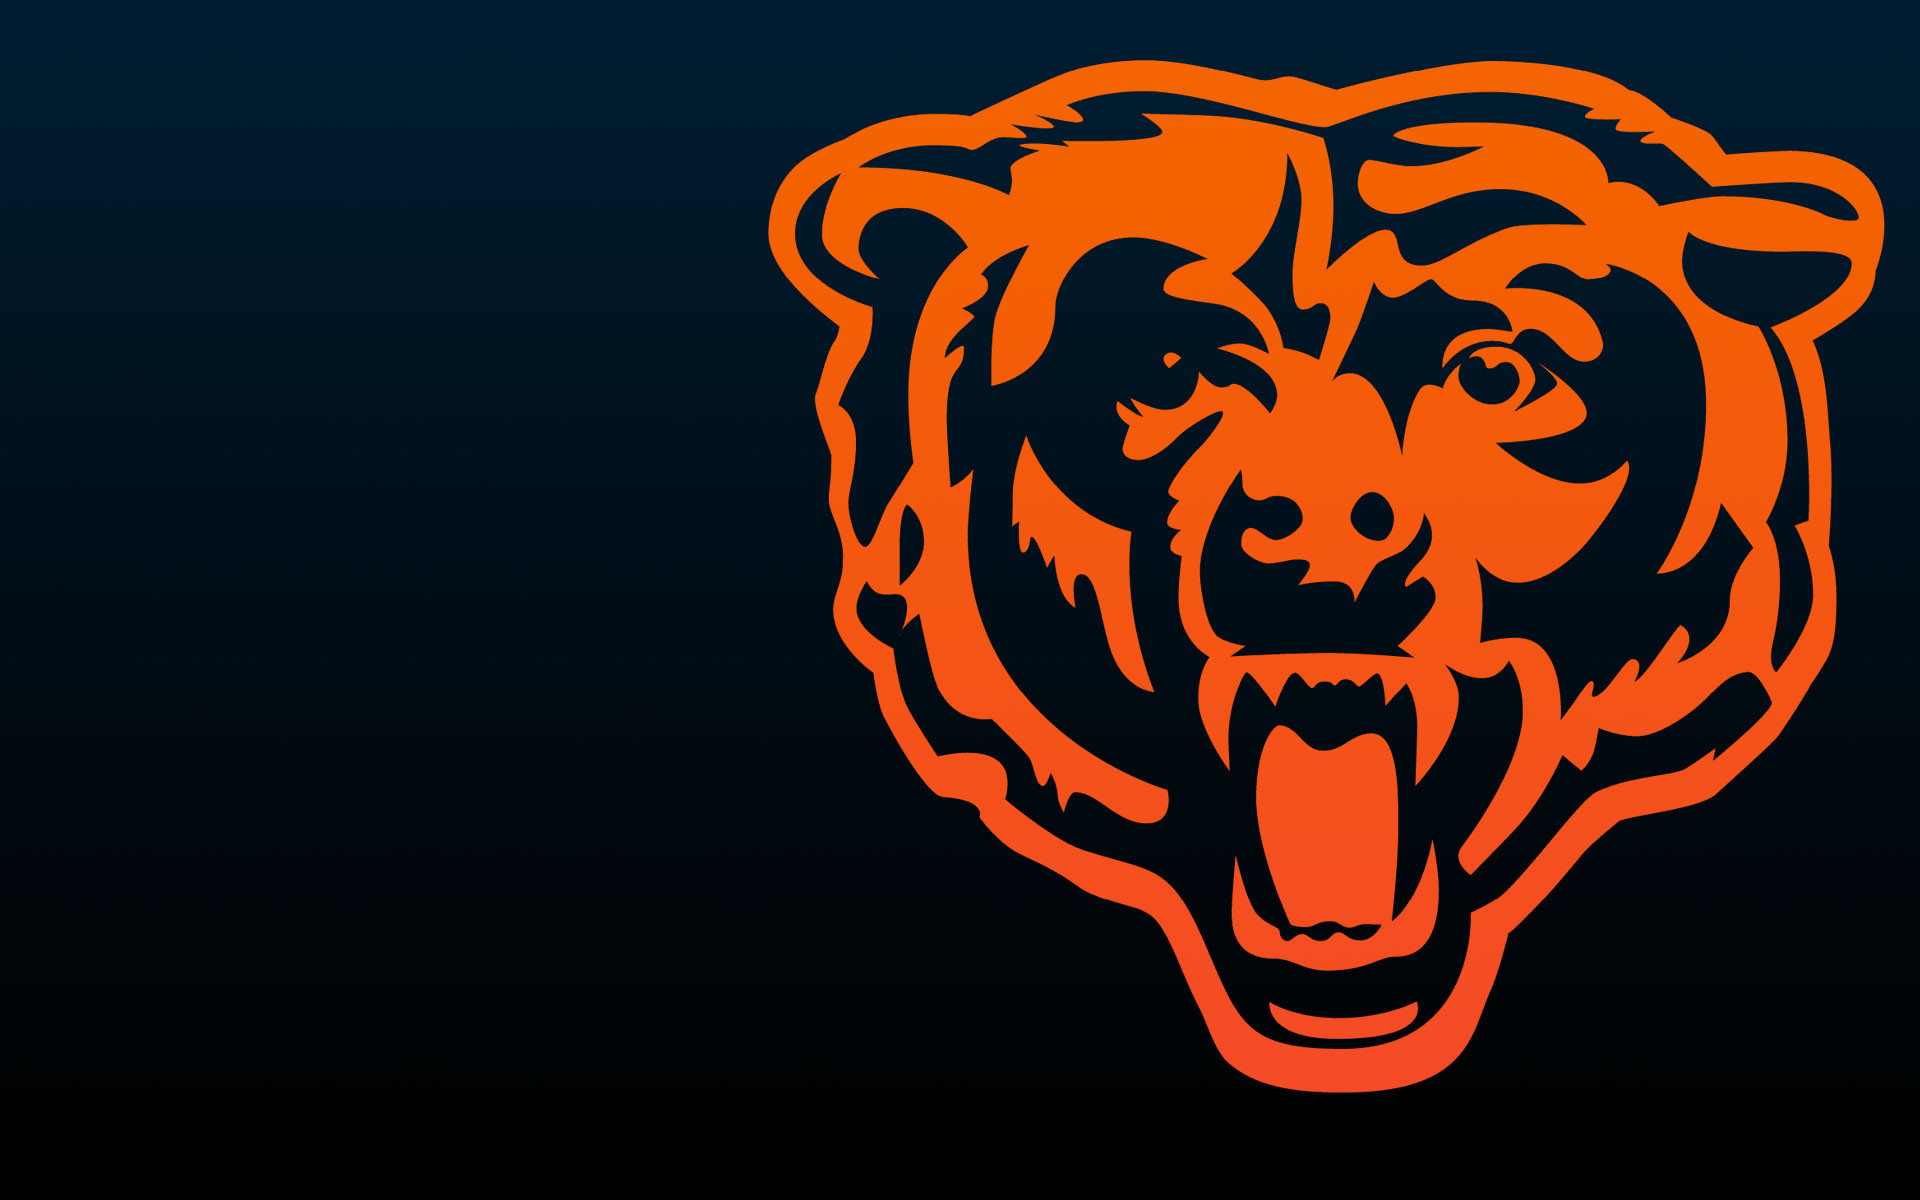 1920x1200 Chicago Bears Wallpaper